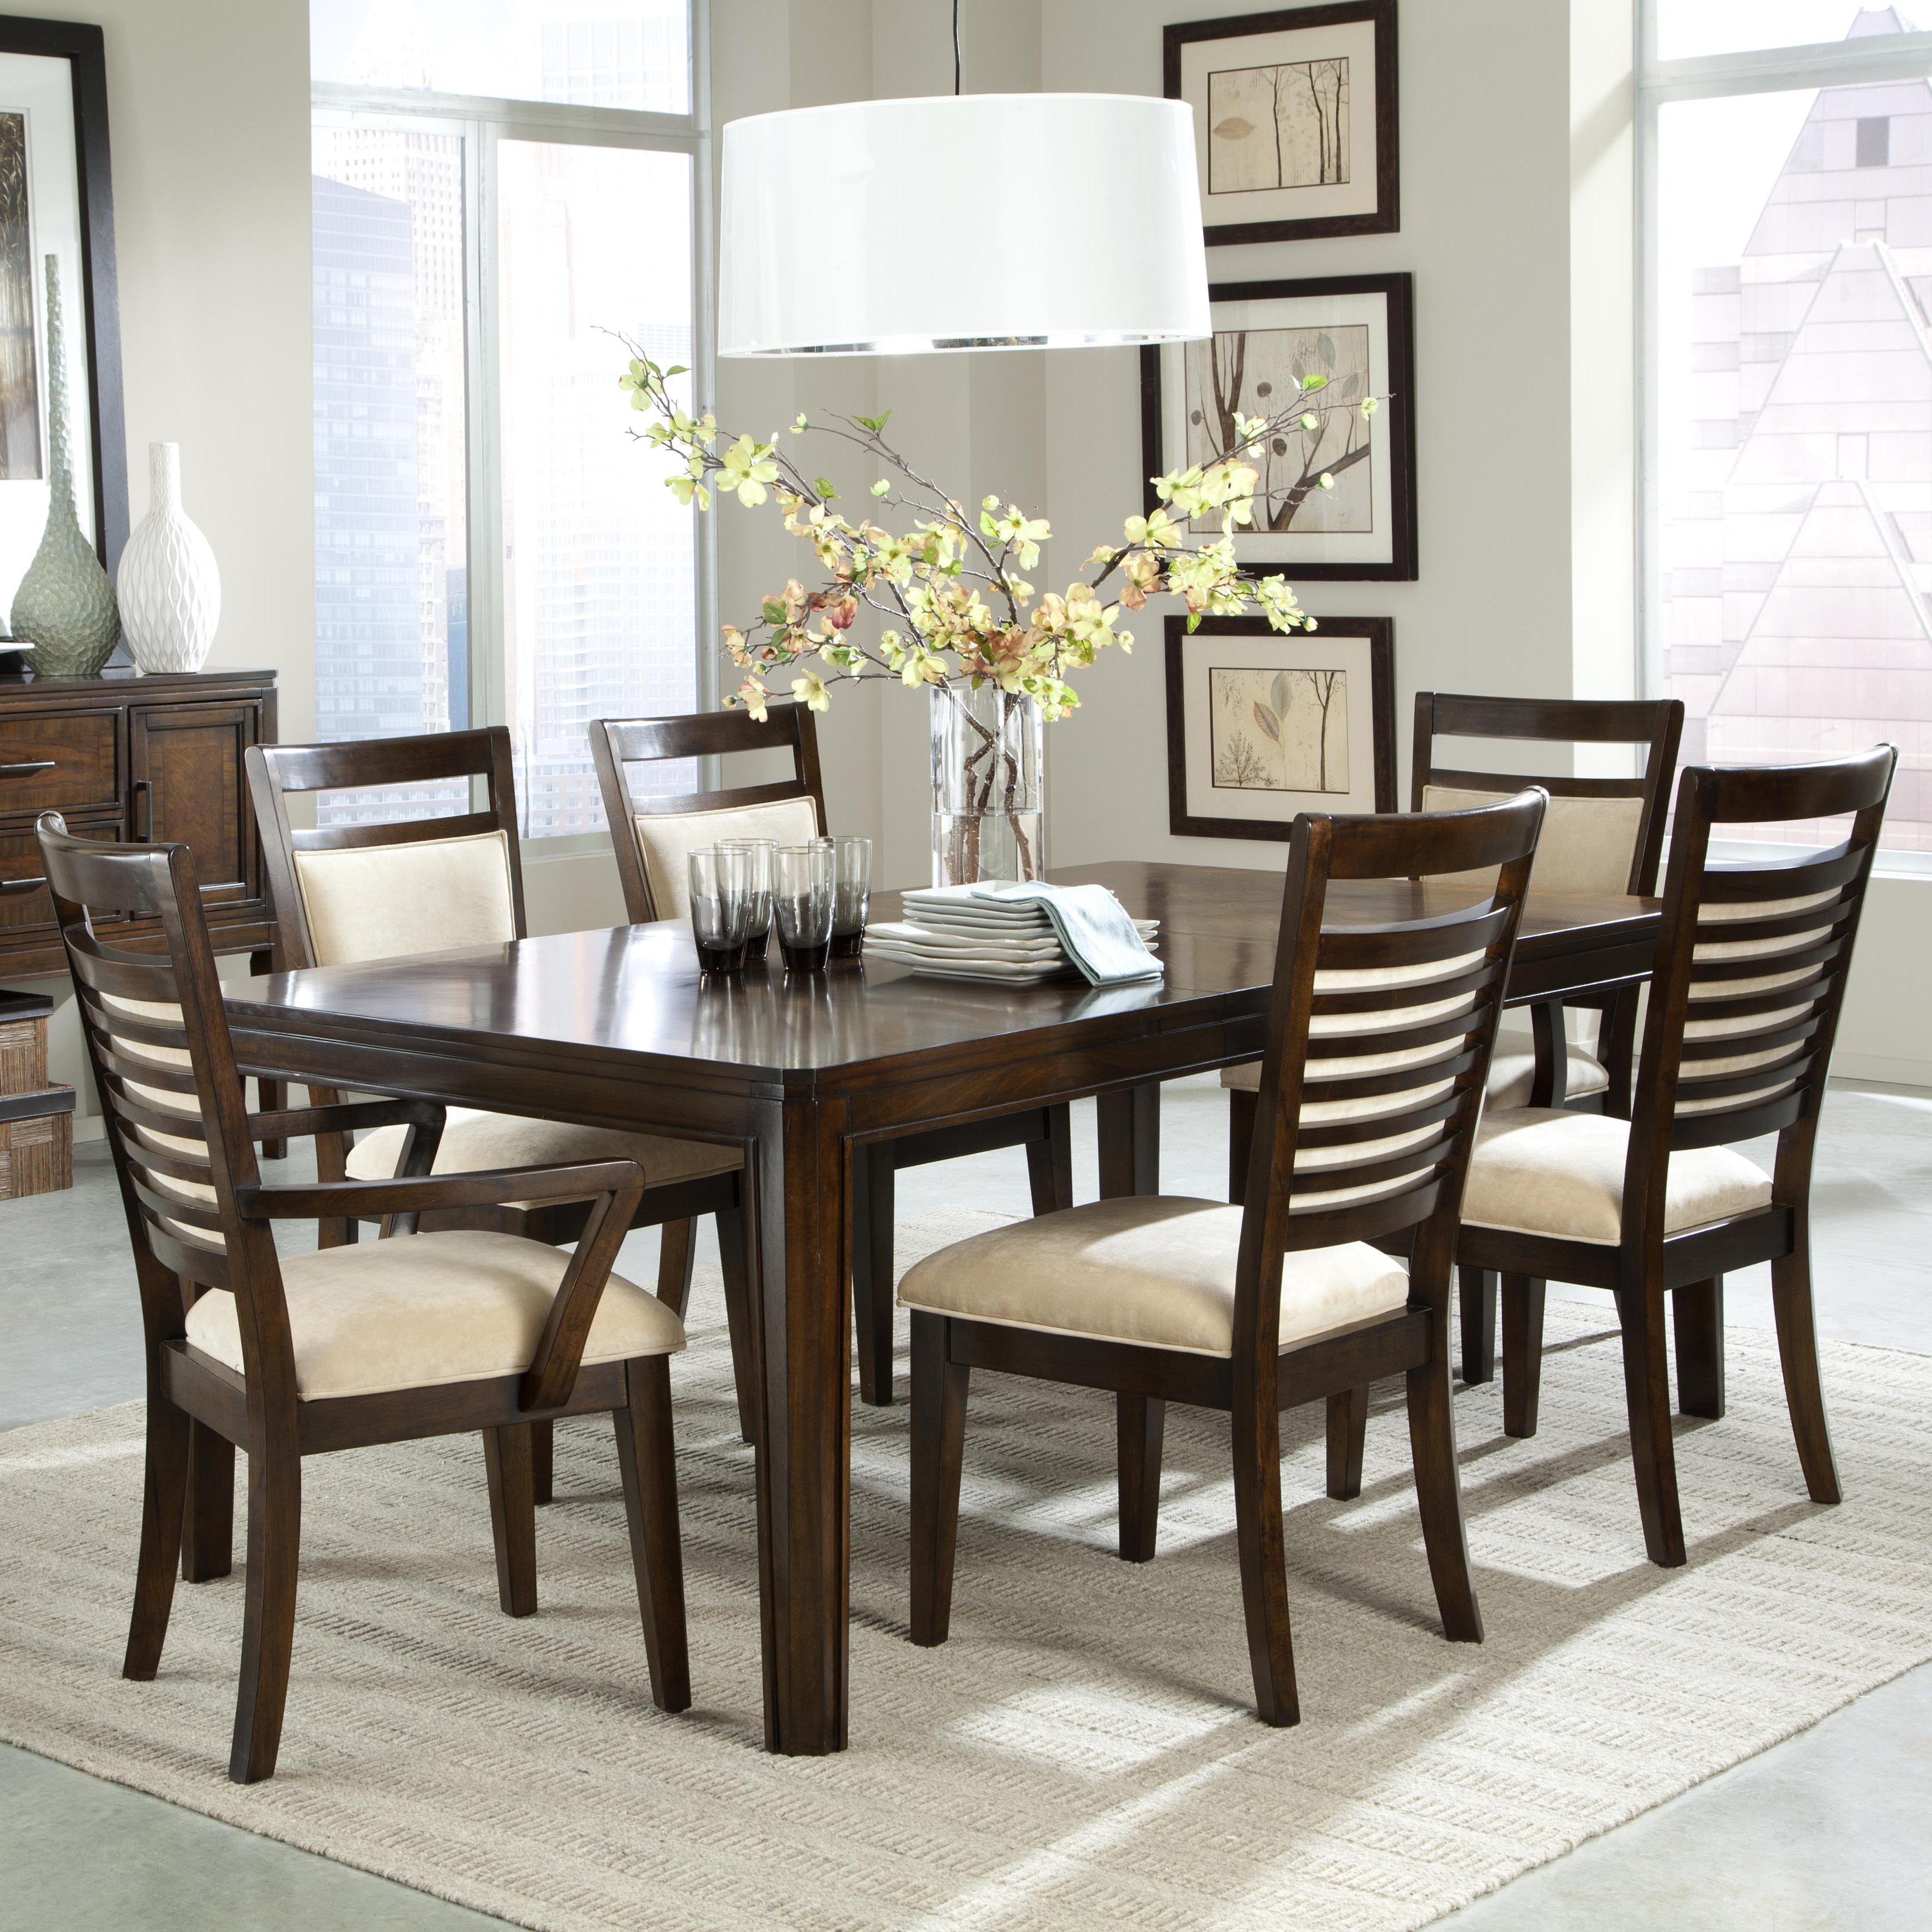 7 piece dining table set and upholstered chairs with for Dinner table and chairs set